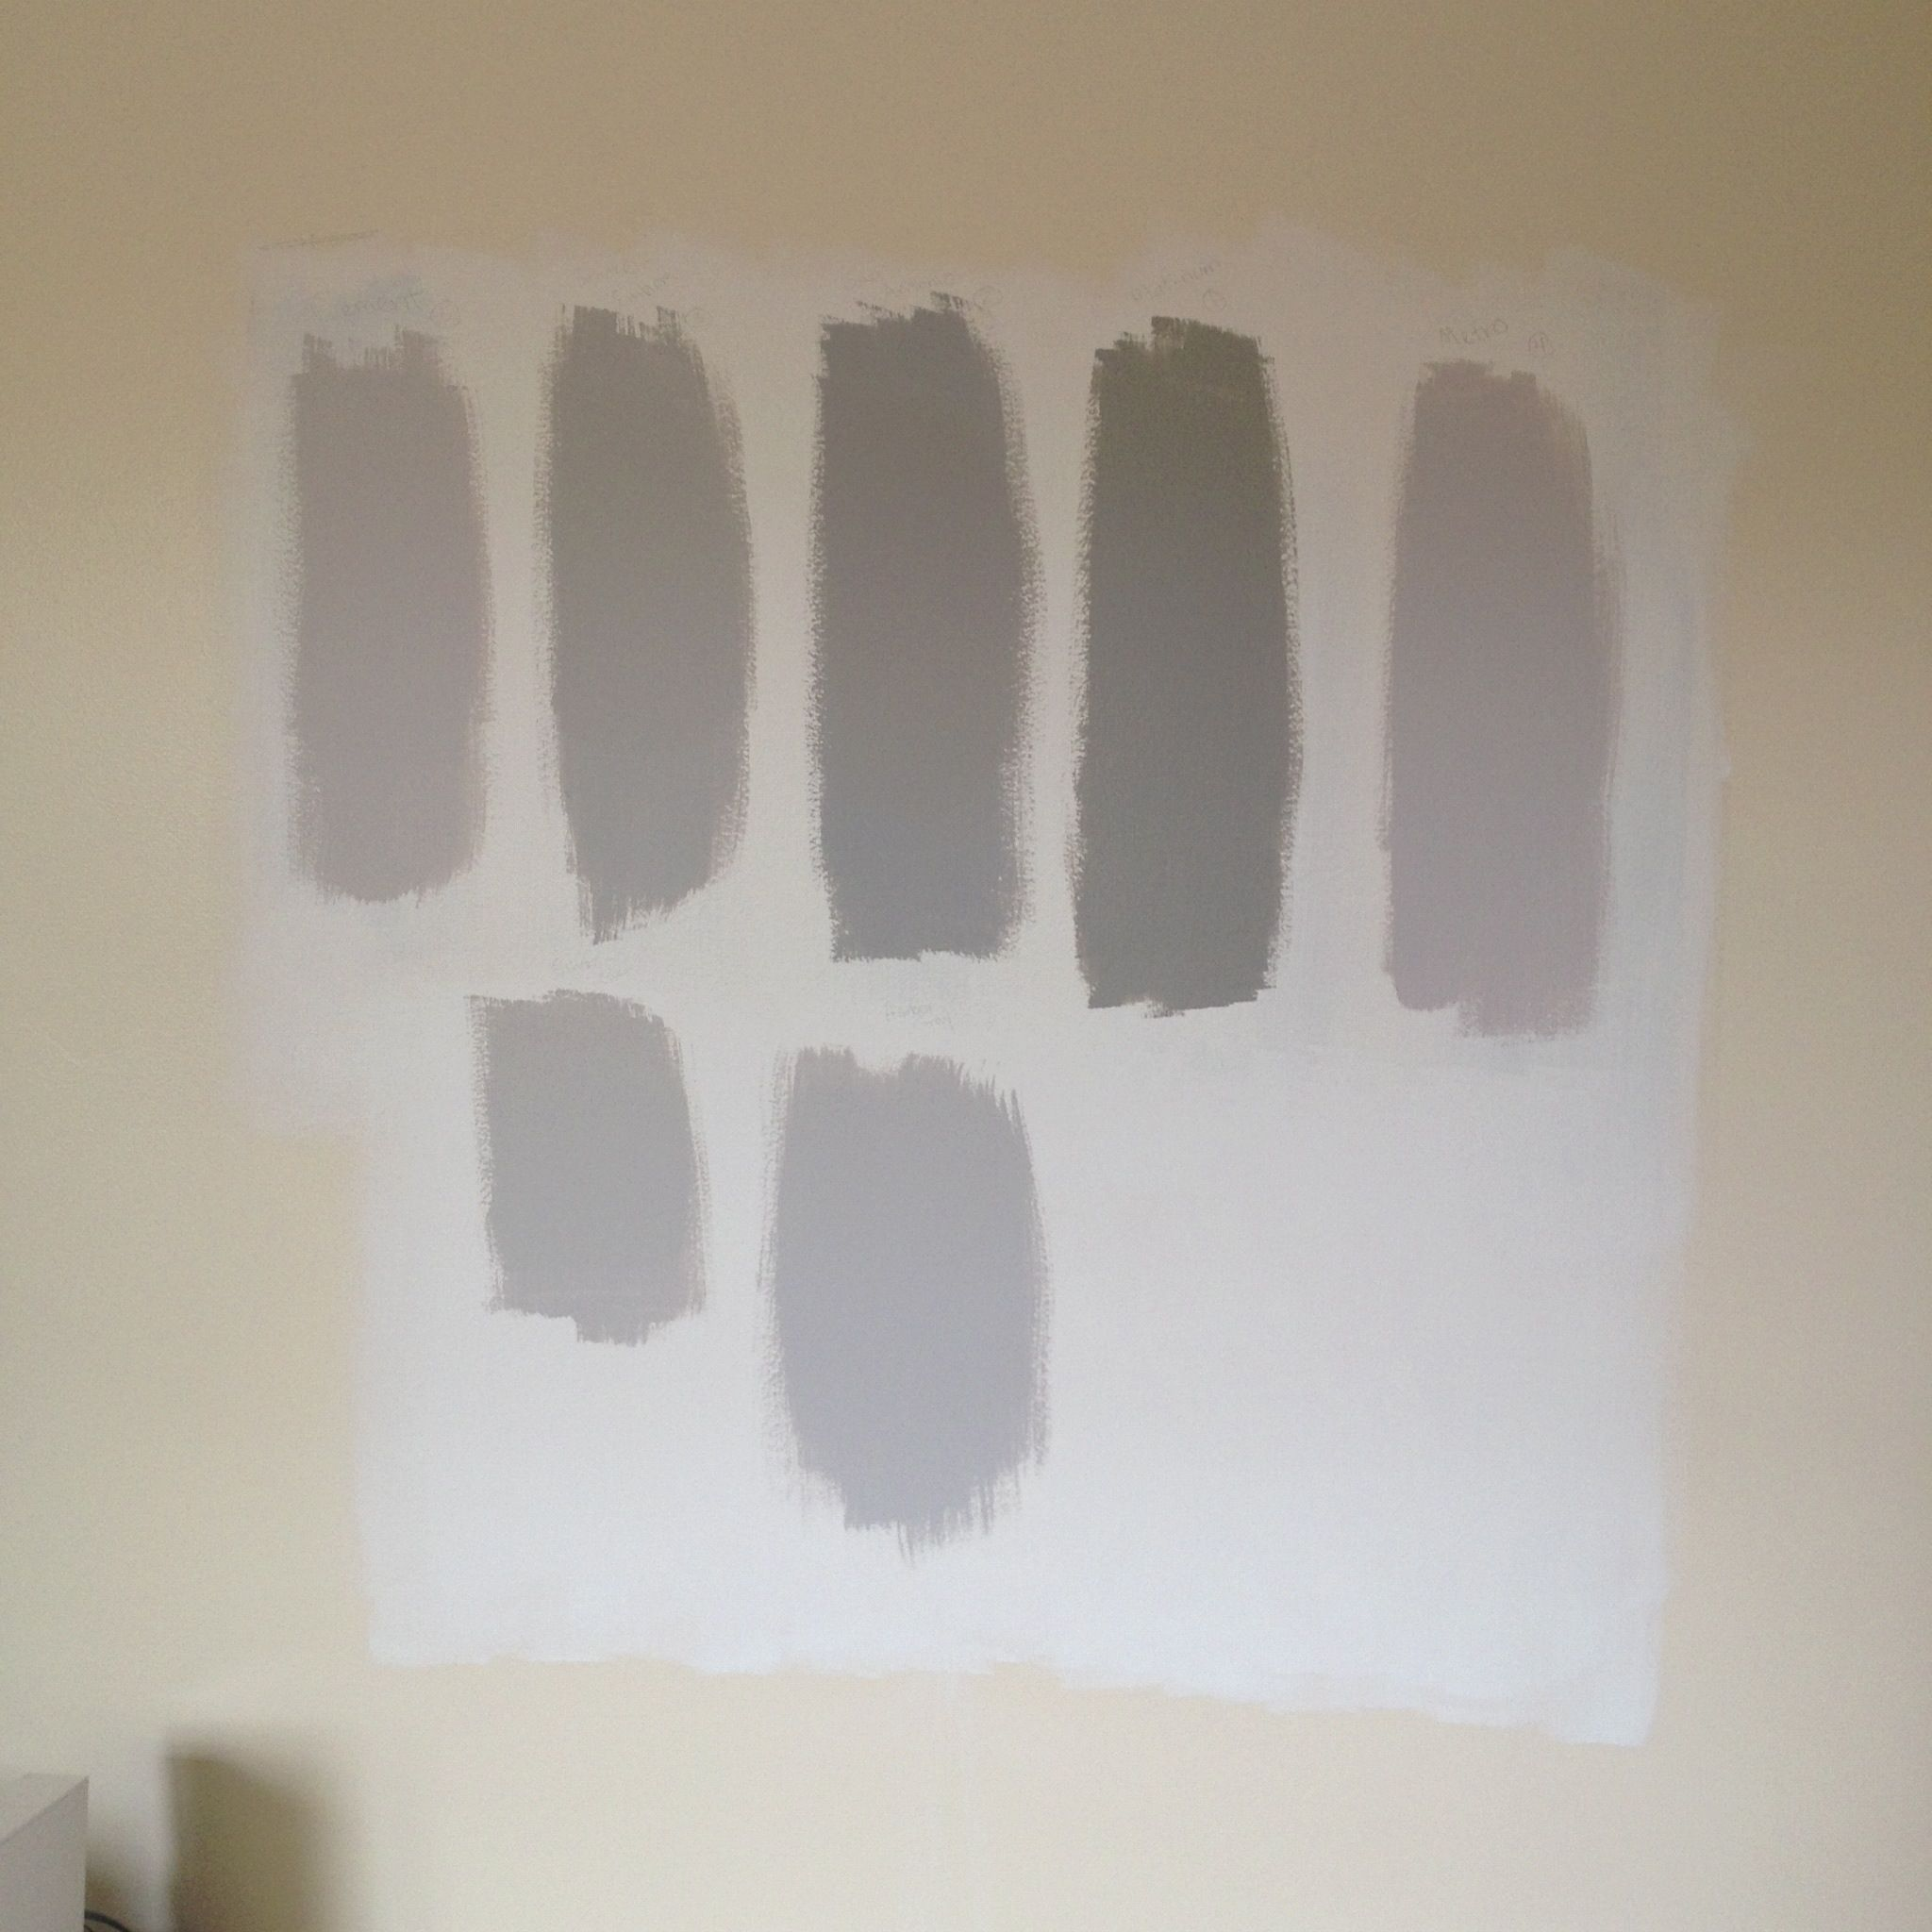 1 cement gray 2 smoke embers gray 3 san antonio gray 4 for Benjamin moore smoke gray